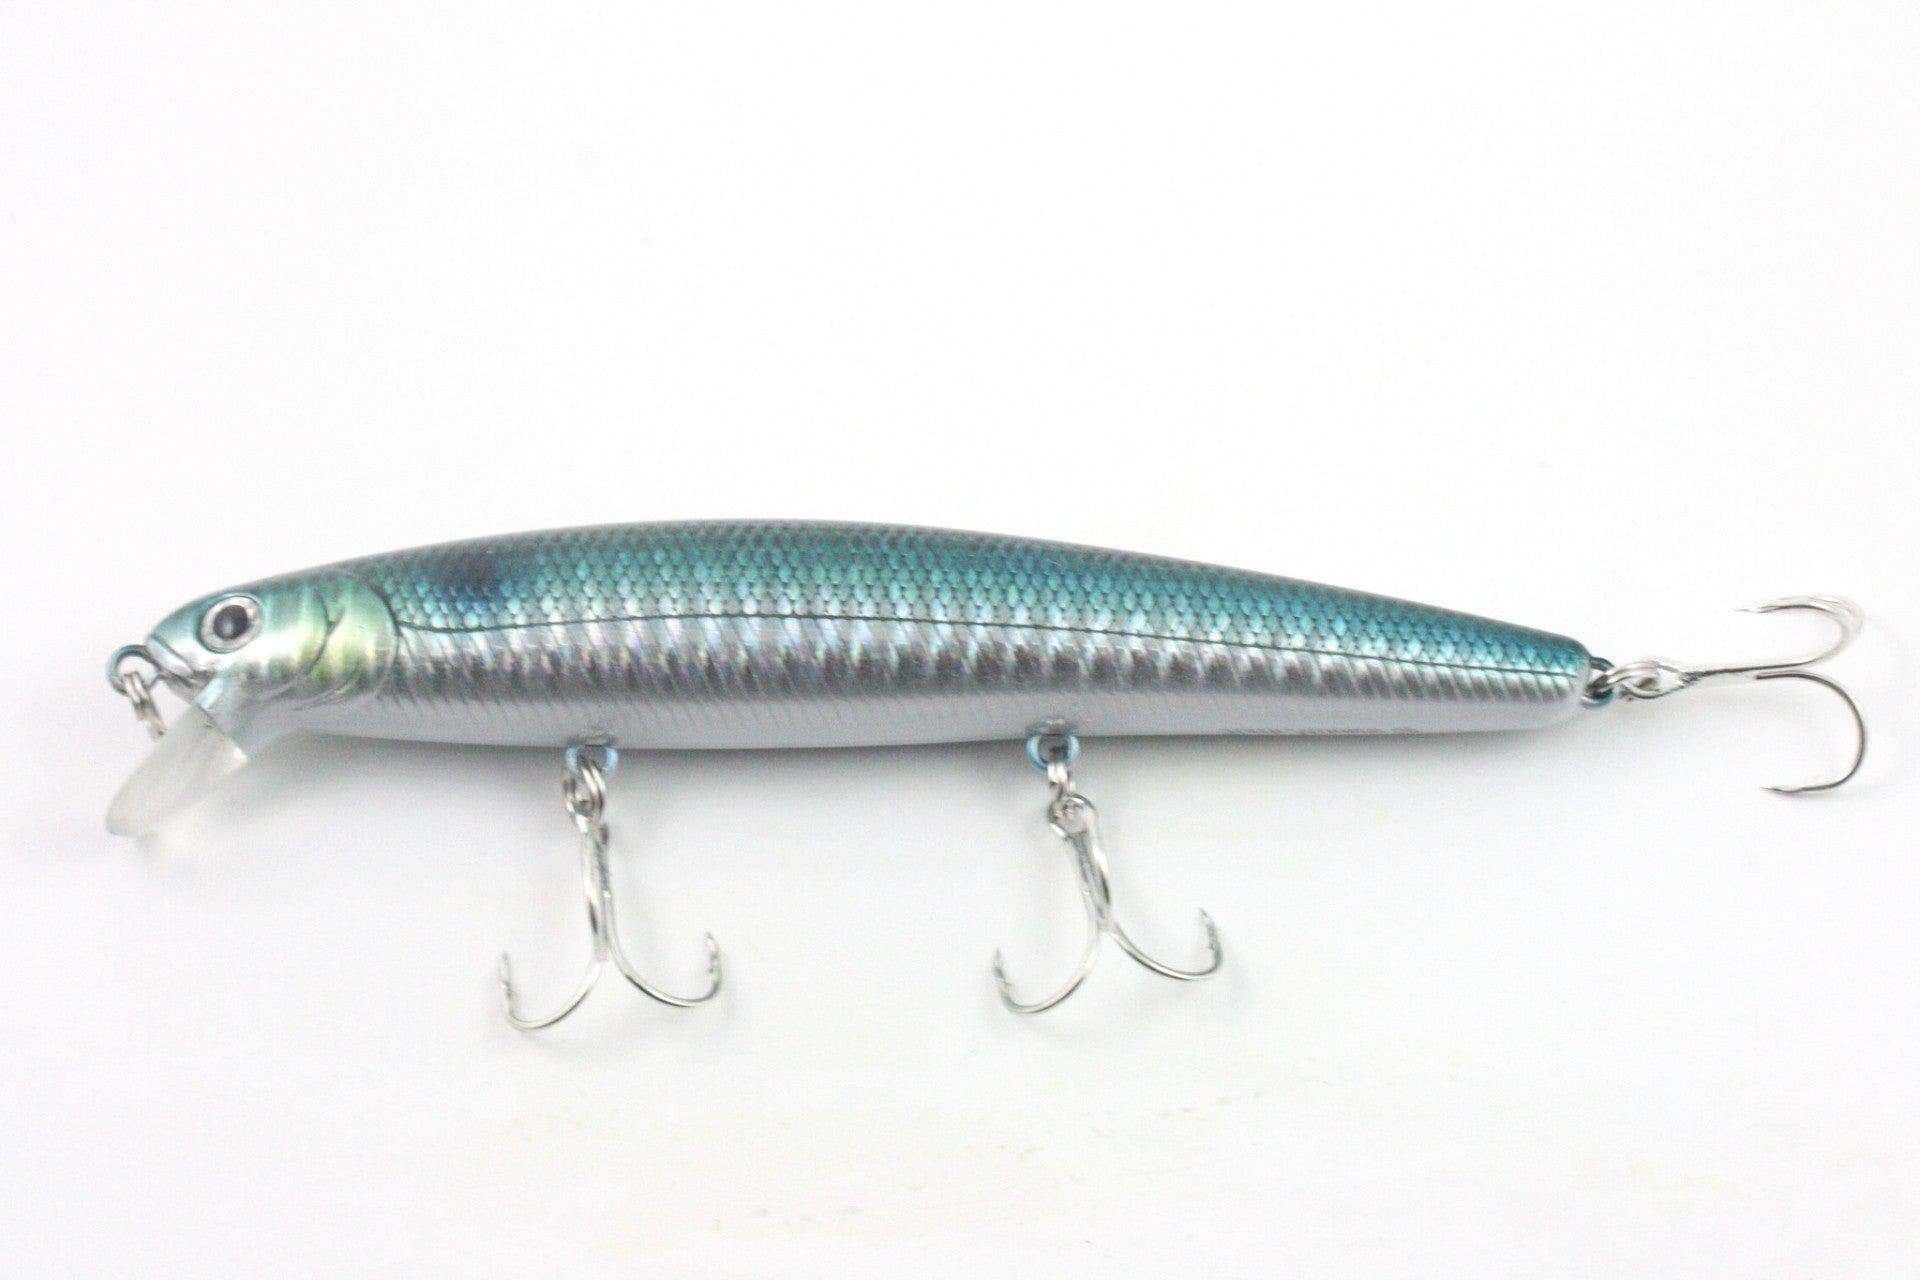 Lucky Craft Flash Minnow 110 Cif Jerkbait Tackle Express Mini Popper Lure Laser